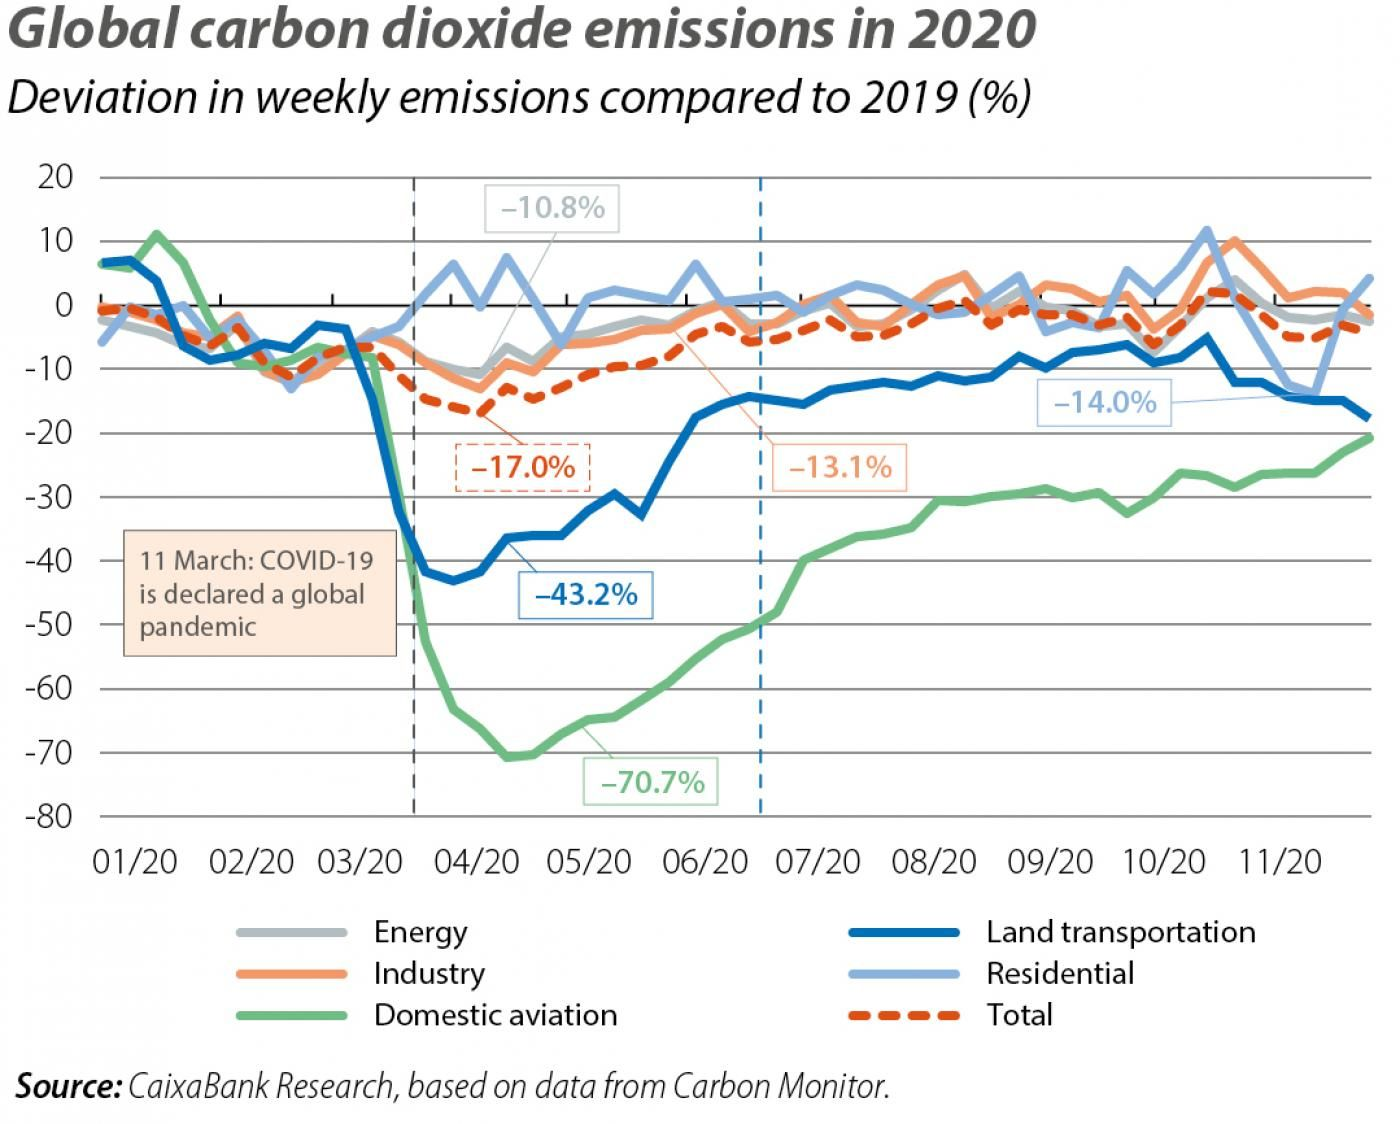 Global carbon dioxide emissions in 2020